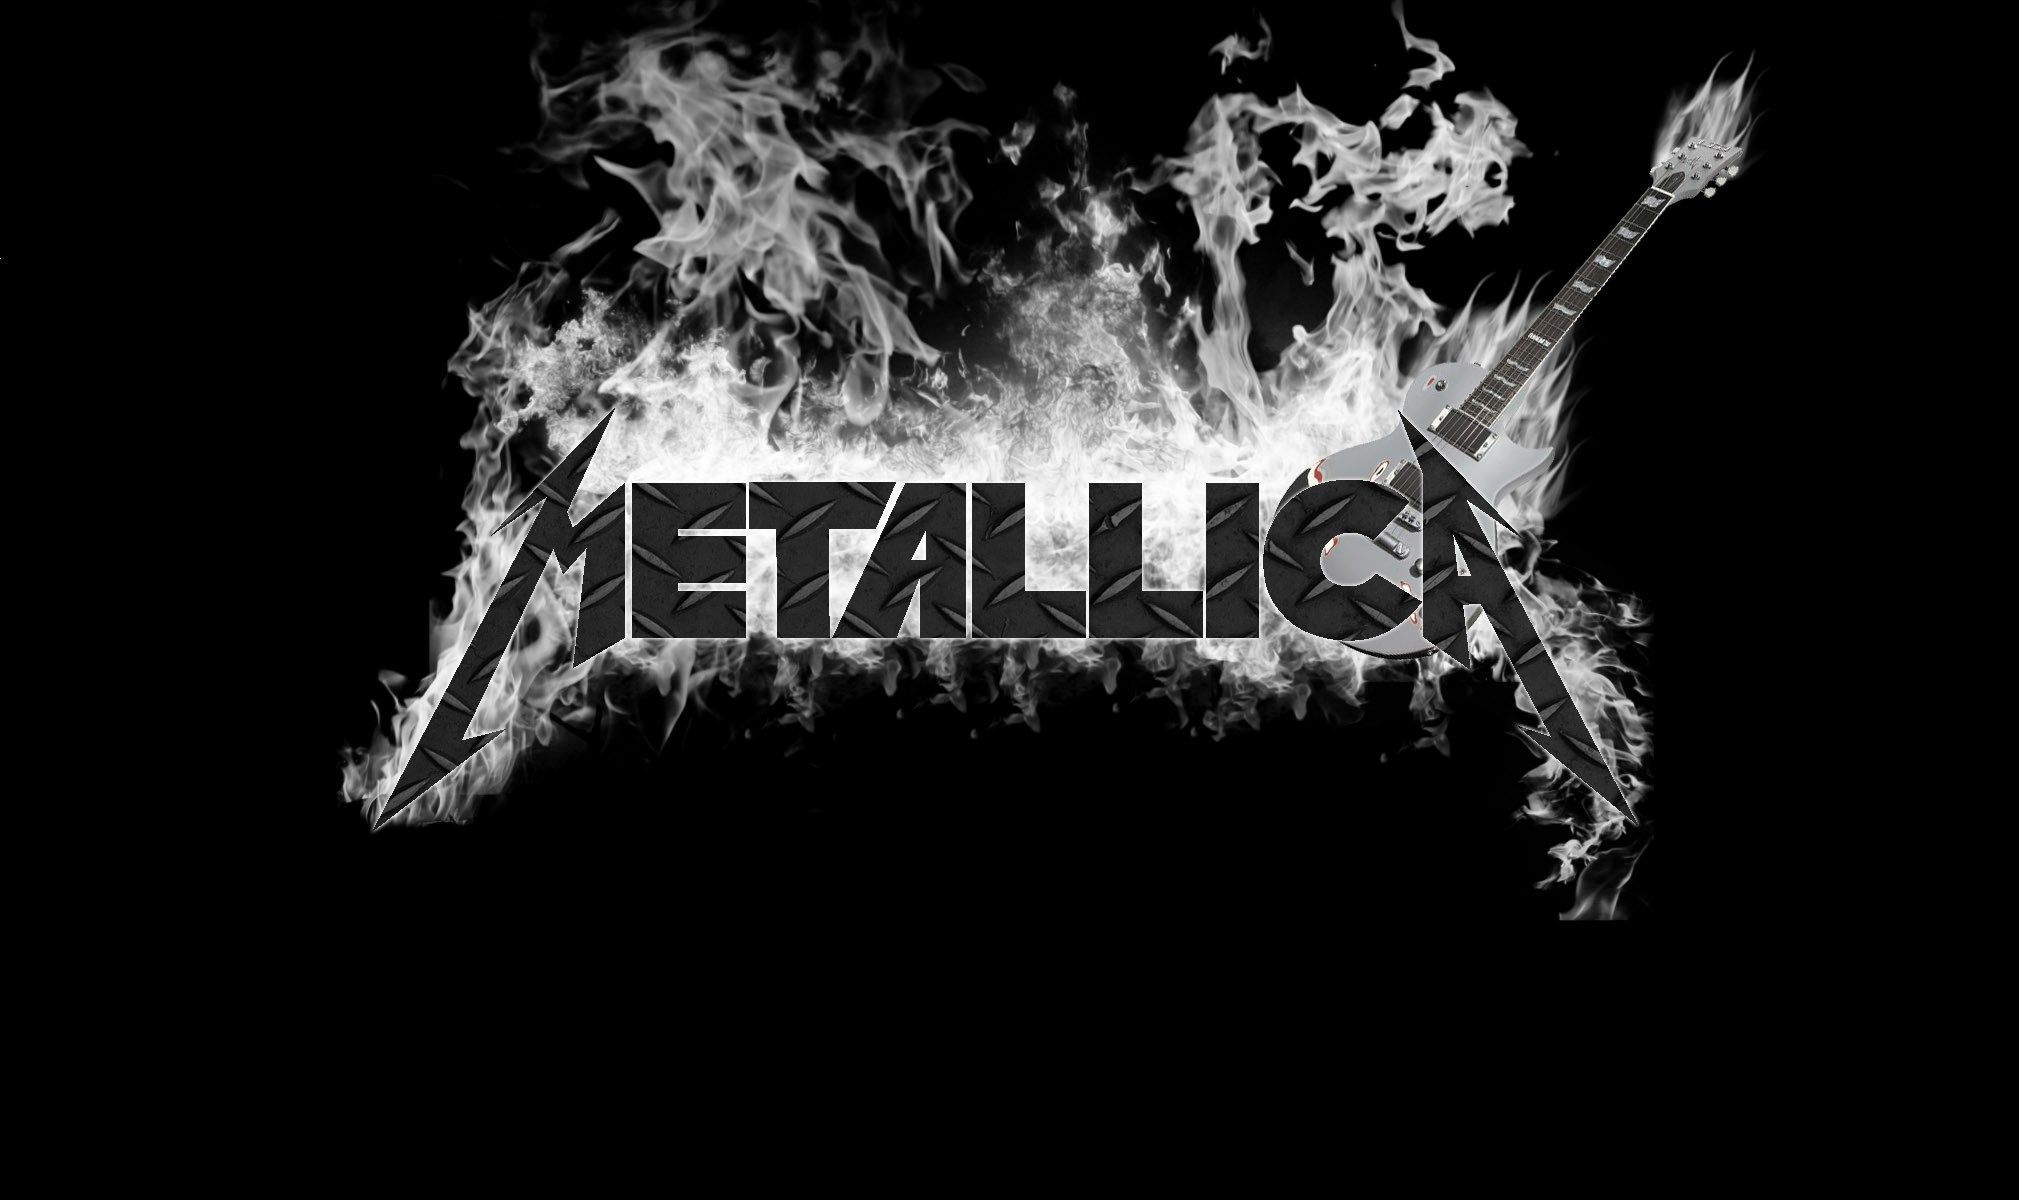 Likewise graphic design desktop typography wallpaper besides black and - Hd Metallica Wallpaper Download